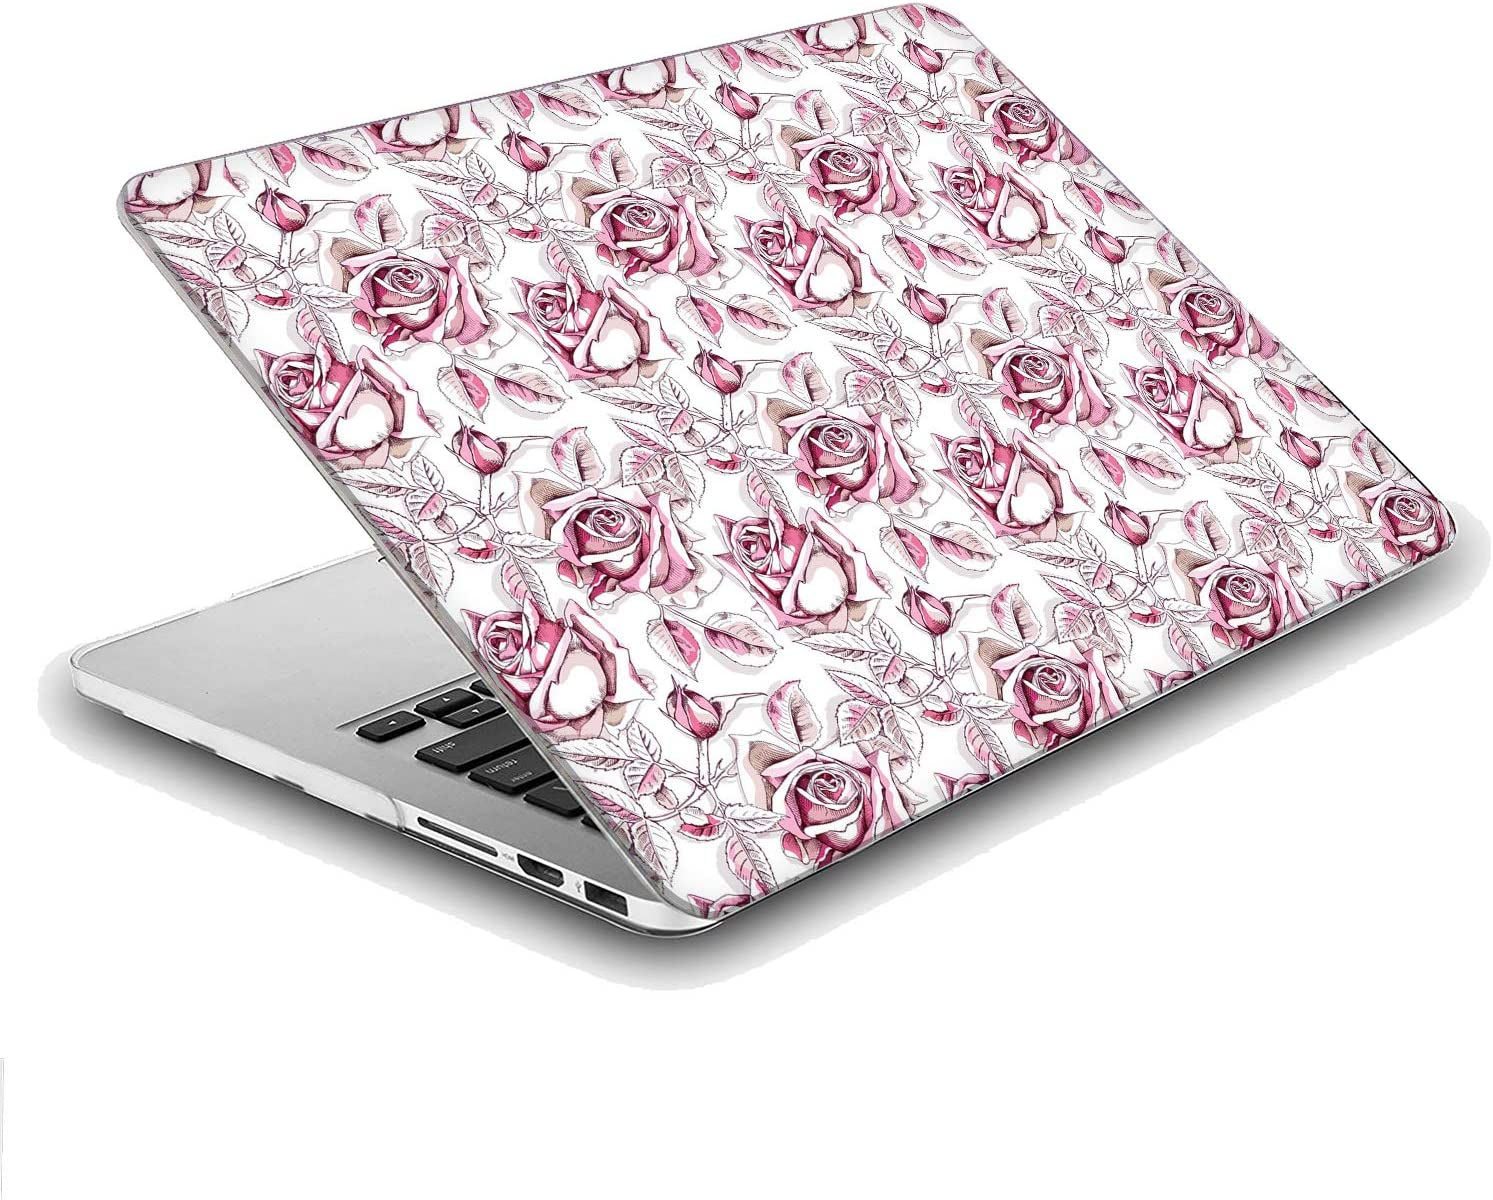 Compatible with MacBook Air 13 inch Hard Plastic Shell Cover Case Floral Rose Pattern A1932, 2019 2018 Release